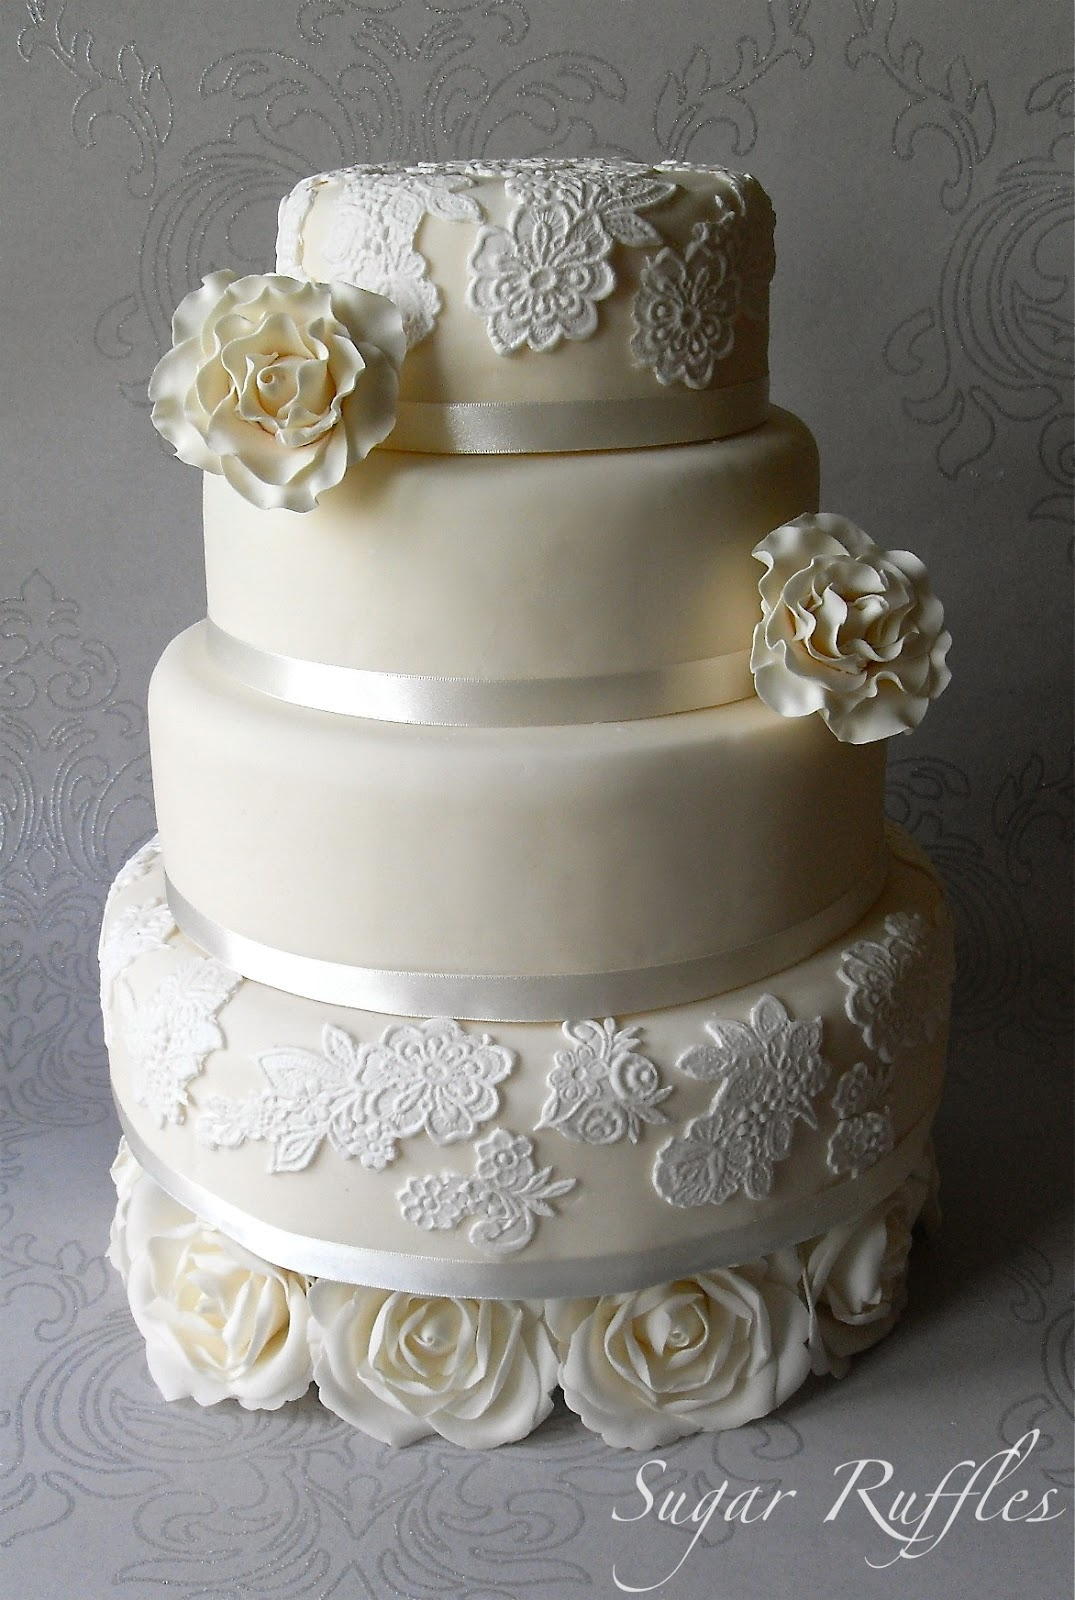 wedding cake with lace and roses sugar ruffles wedding cakes barrow in furness 26912